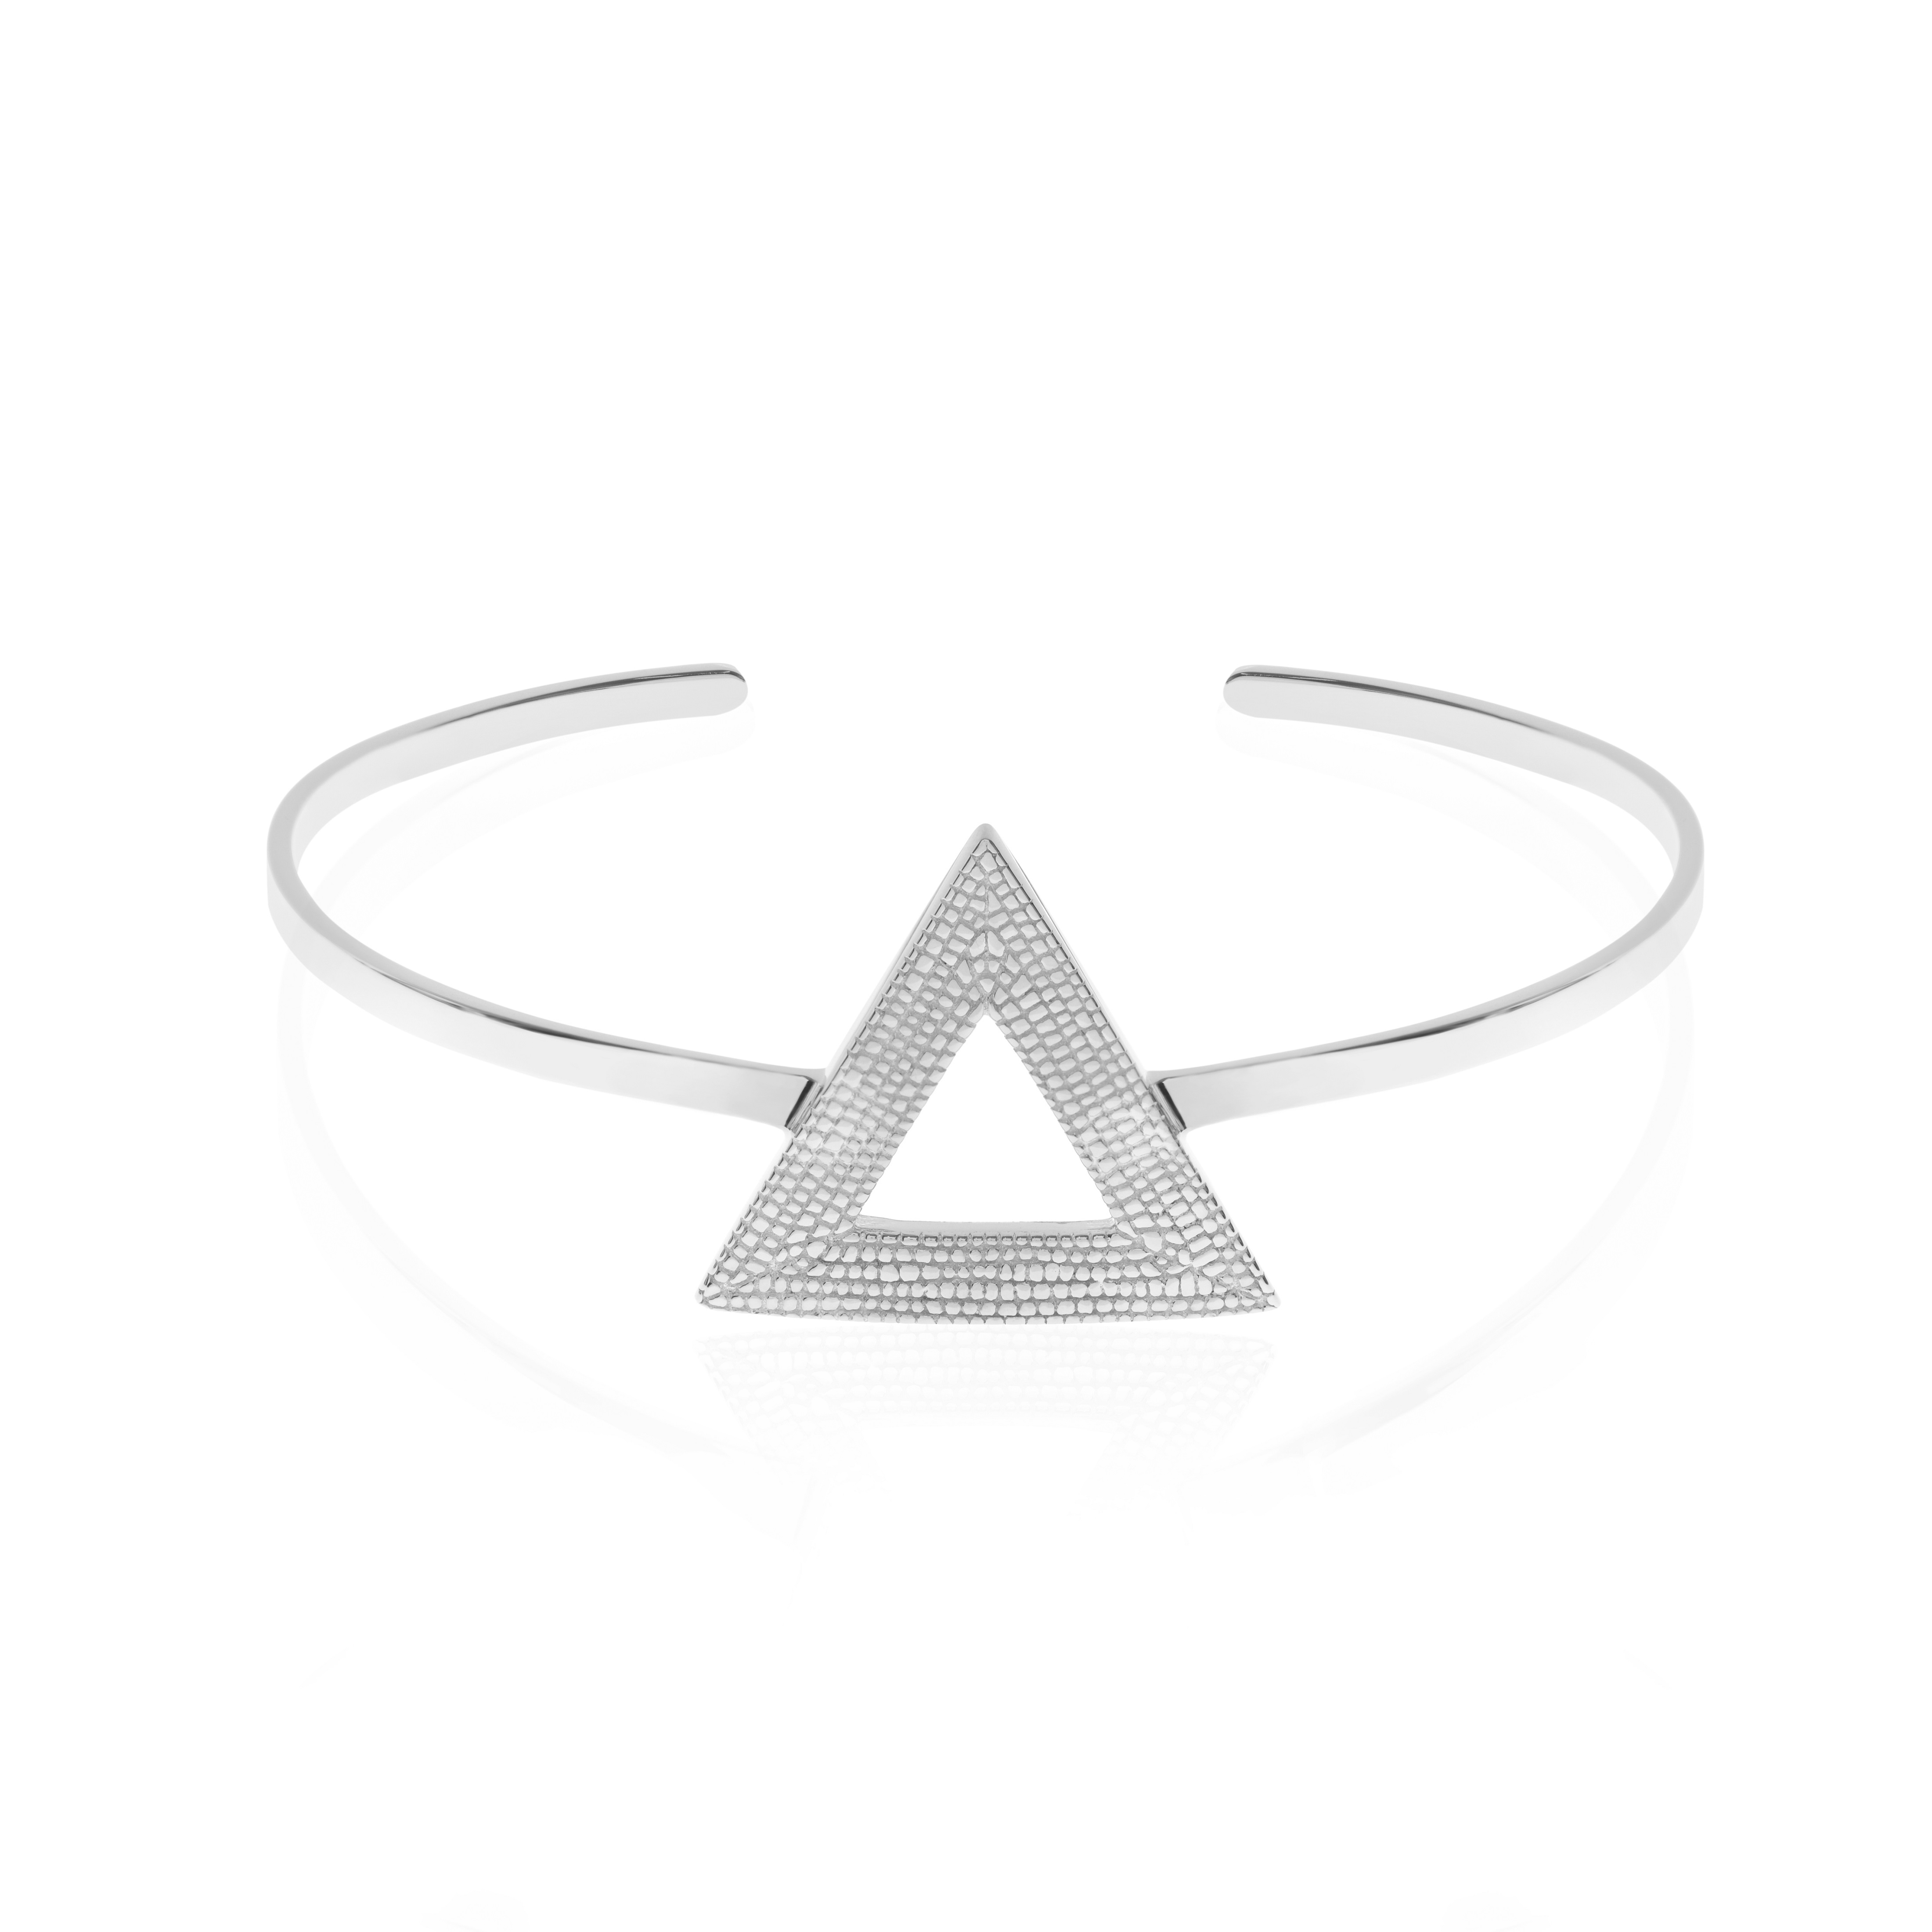 Who Says We Can't Change? Bangle/Cuff, Silver by Sally Lane Jewellery on curated-crowd.com